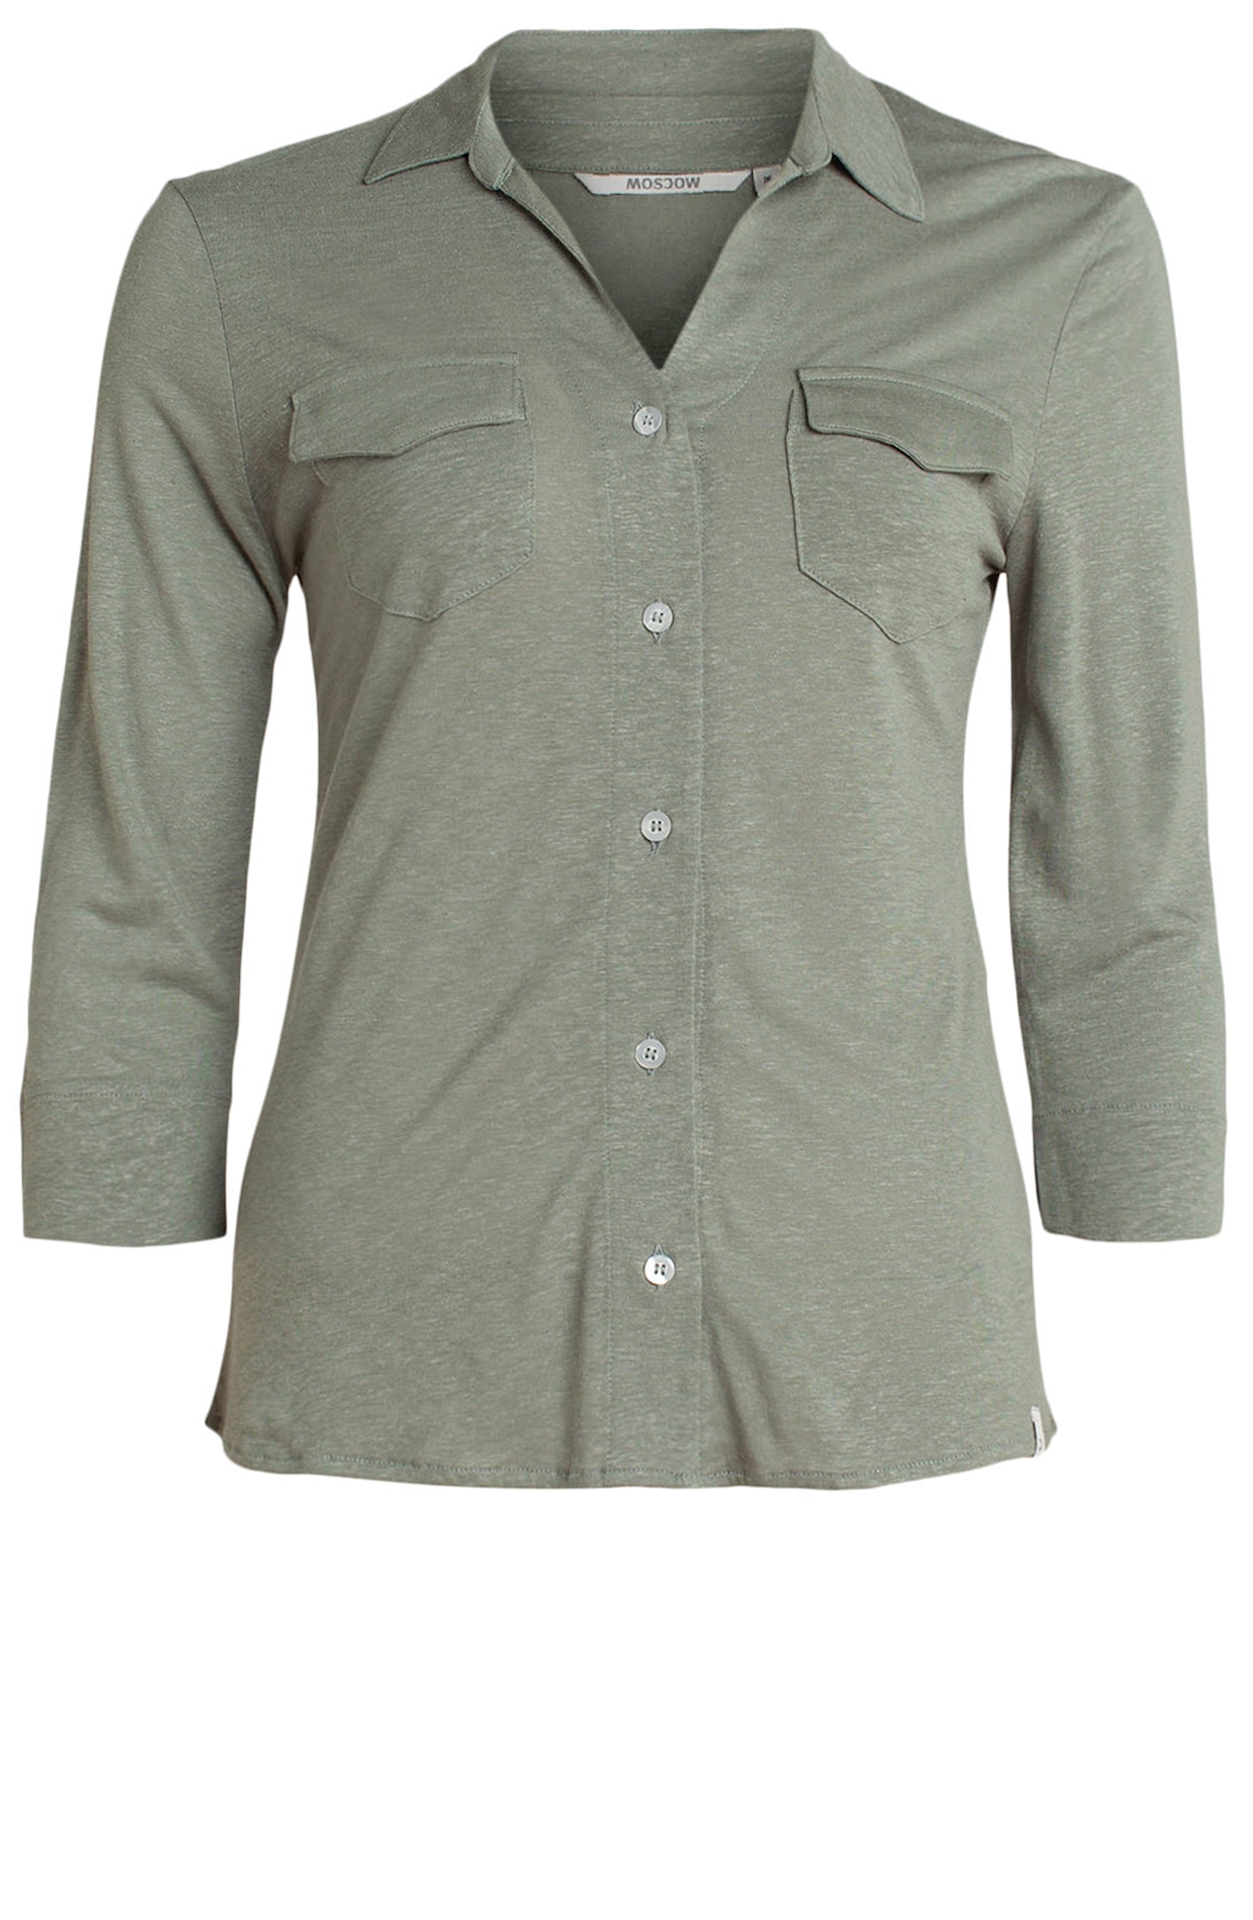 Moscow light sage jersey blouse